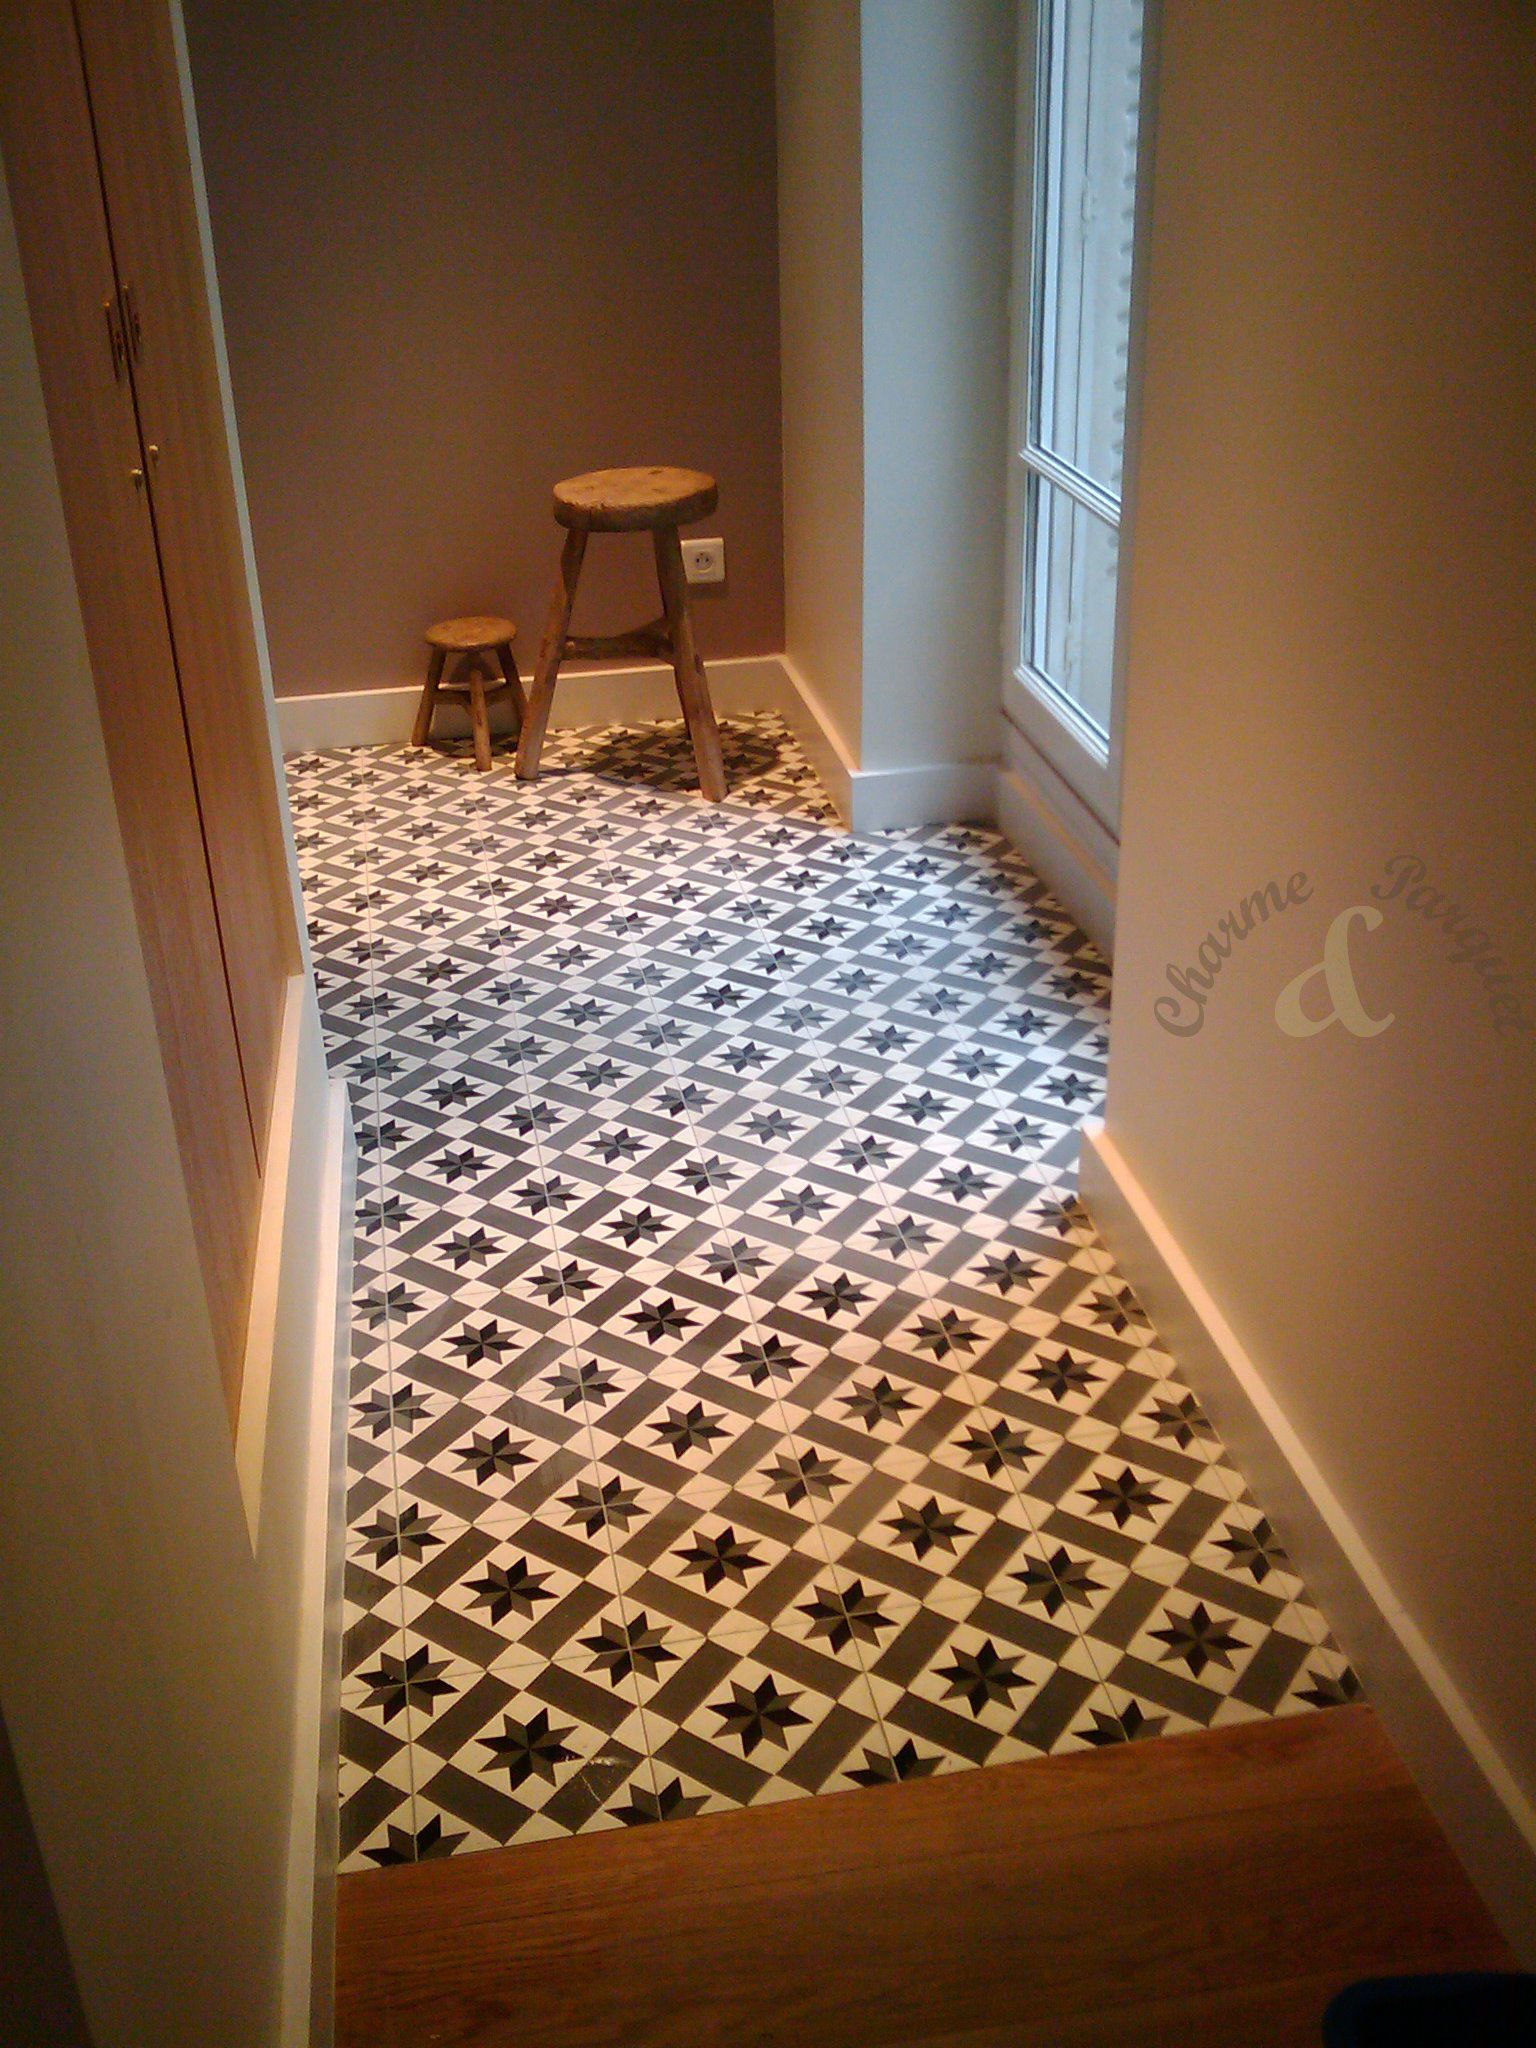 carreaux de ciment dans un couloir mod le ch 13 charme parquet carreaux de ciment. Black Bedroom Furniture Sets. Home Design Ideas